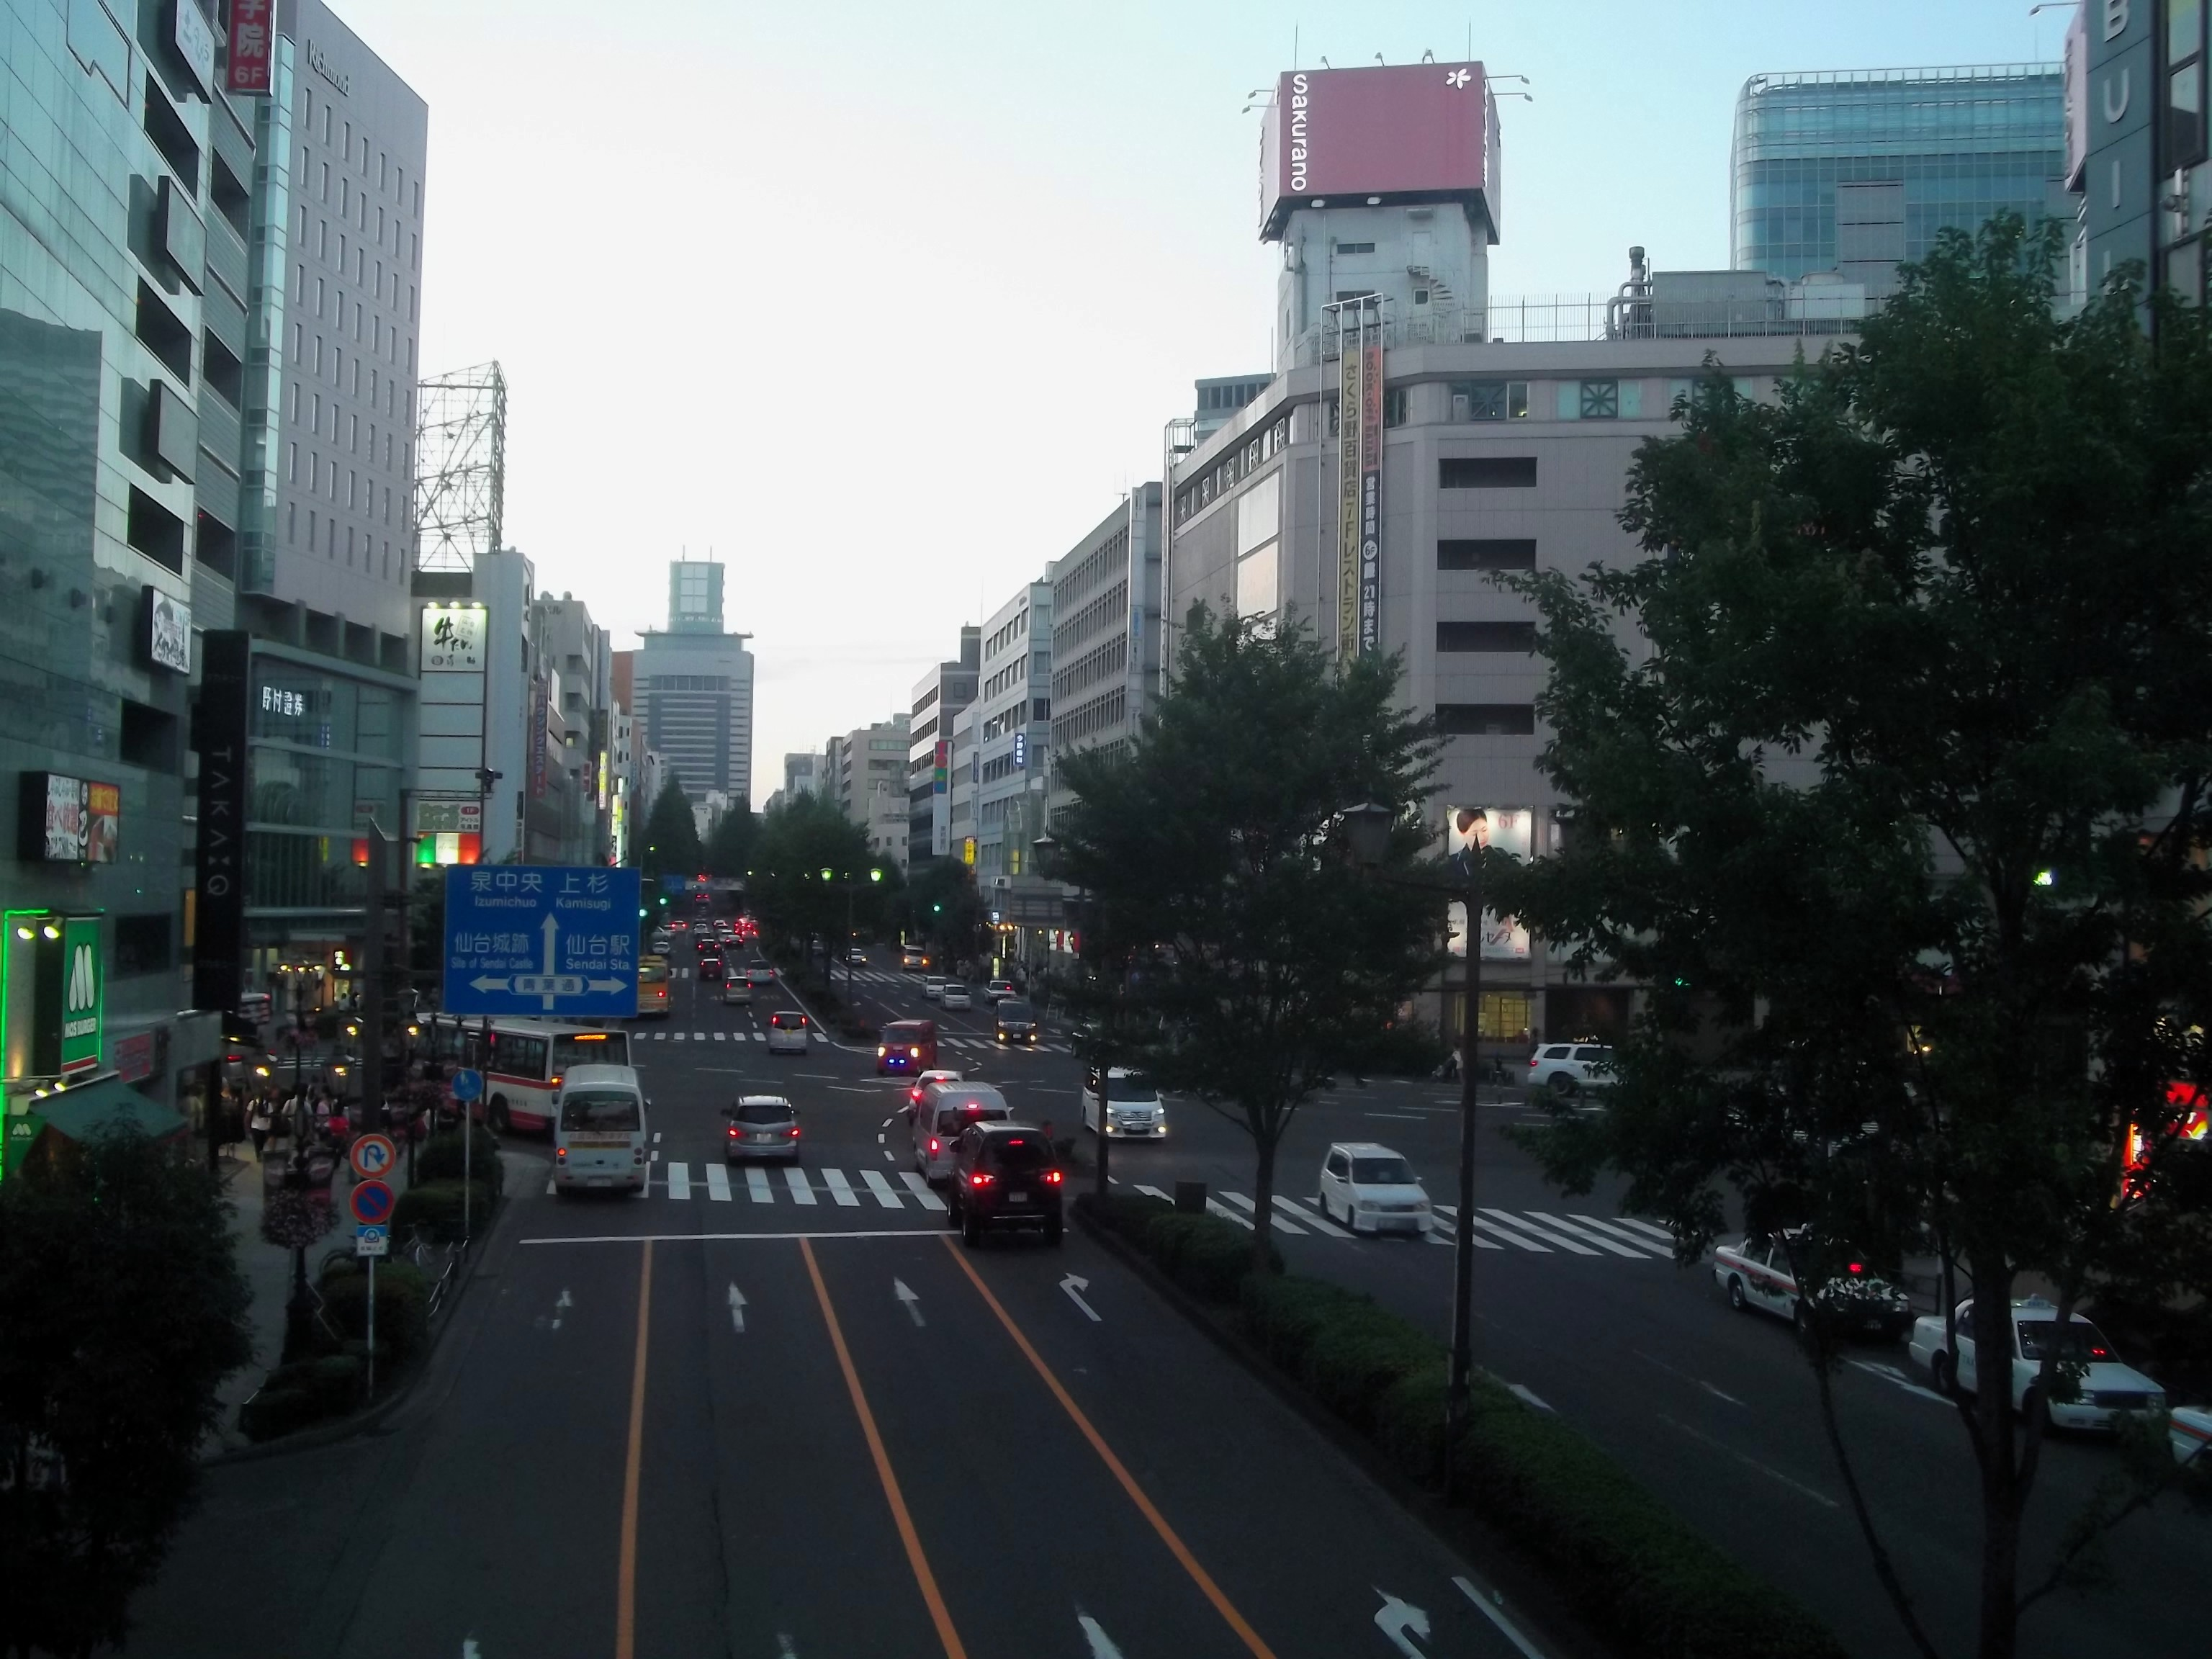 dating sendai Join our intrepid writer nick on a journey to the inaugural kizuna festival in sendai to celebrate the community, cooperation and cultural diversity of the tohoku region.